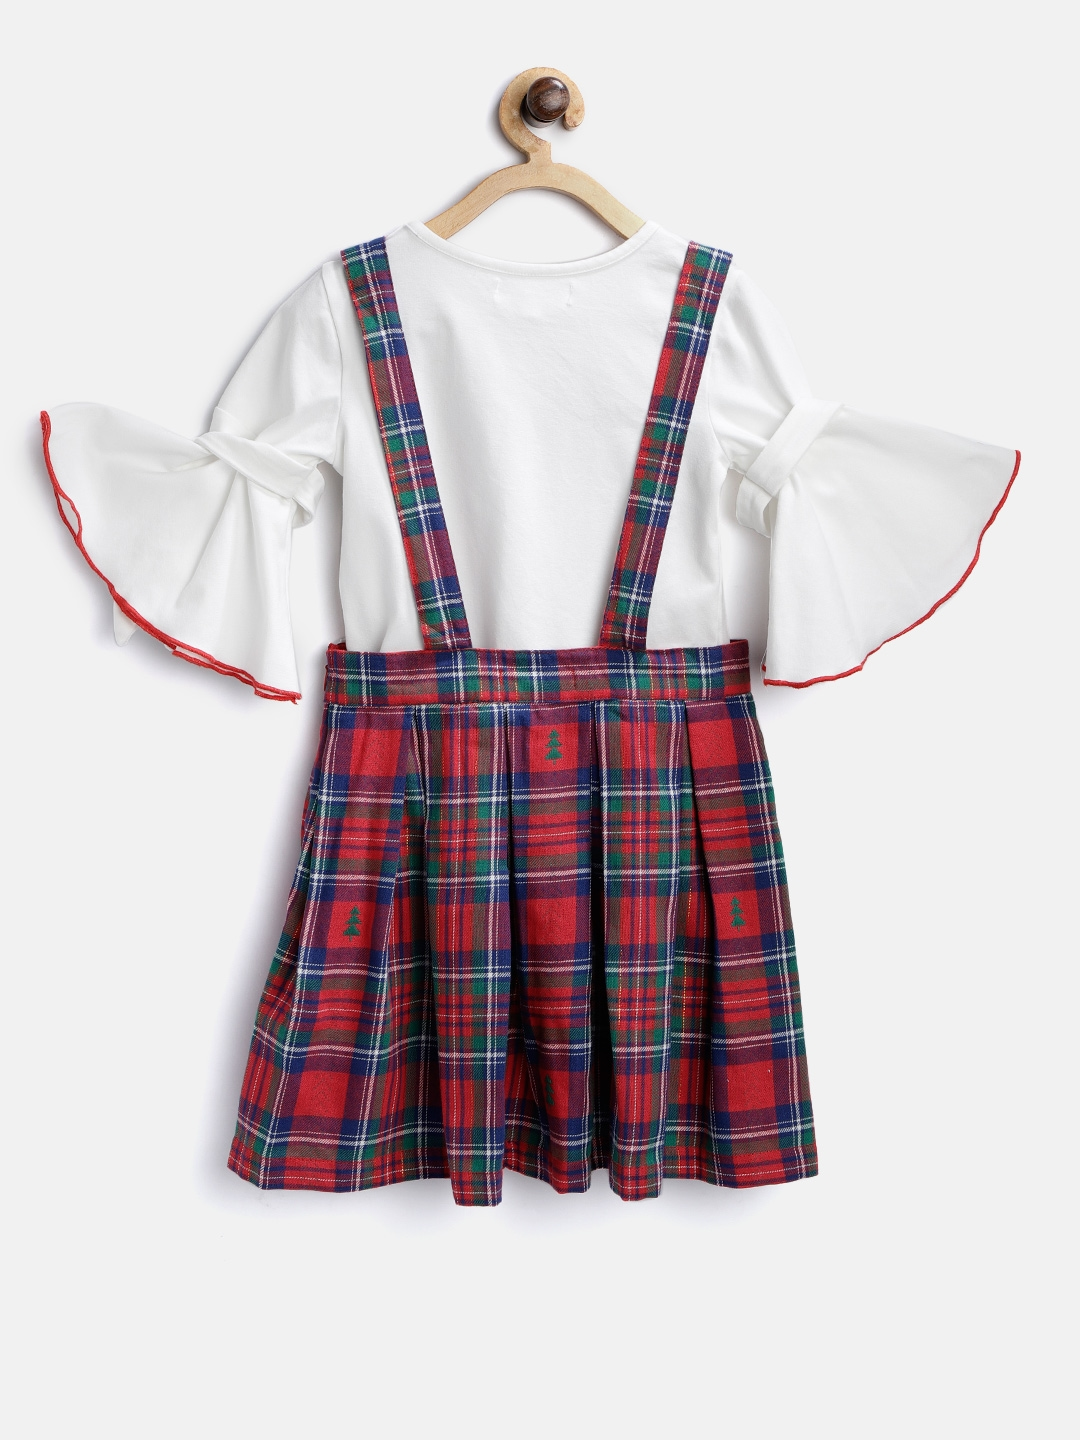 d1eab6f6427 Buy Nauti Nati Girls Red   Green Checked Pinafore Dress With Top ...